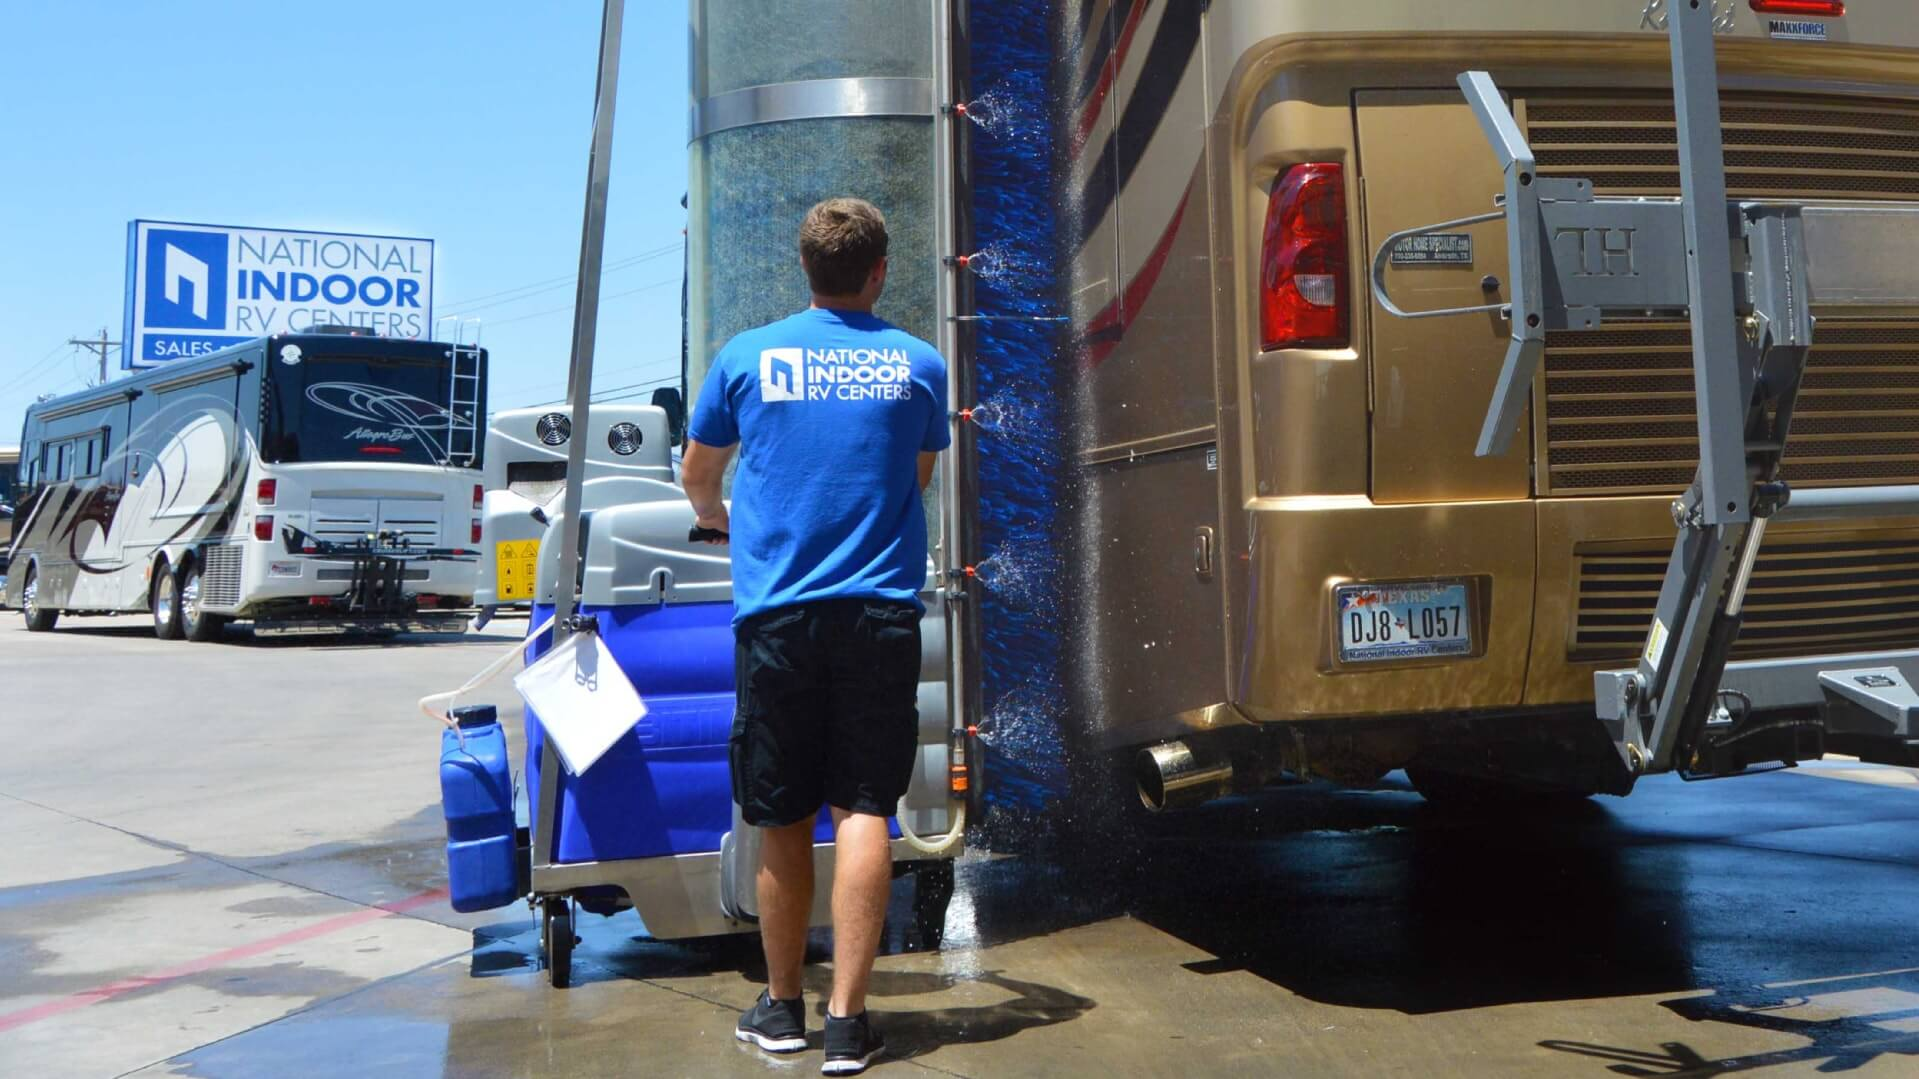 Bitimec wash-bots diesel powered A225-EZ bus wash machine washing a class A RV at NIRVC in Dallas